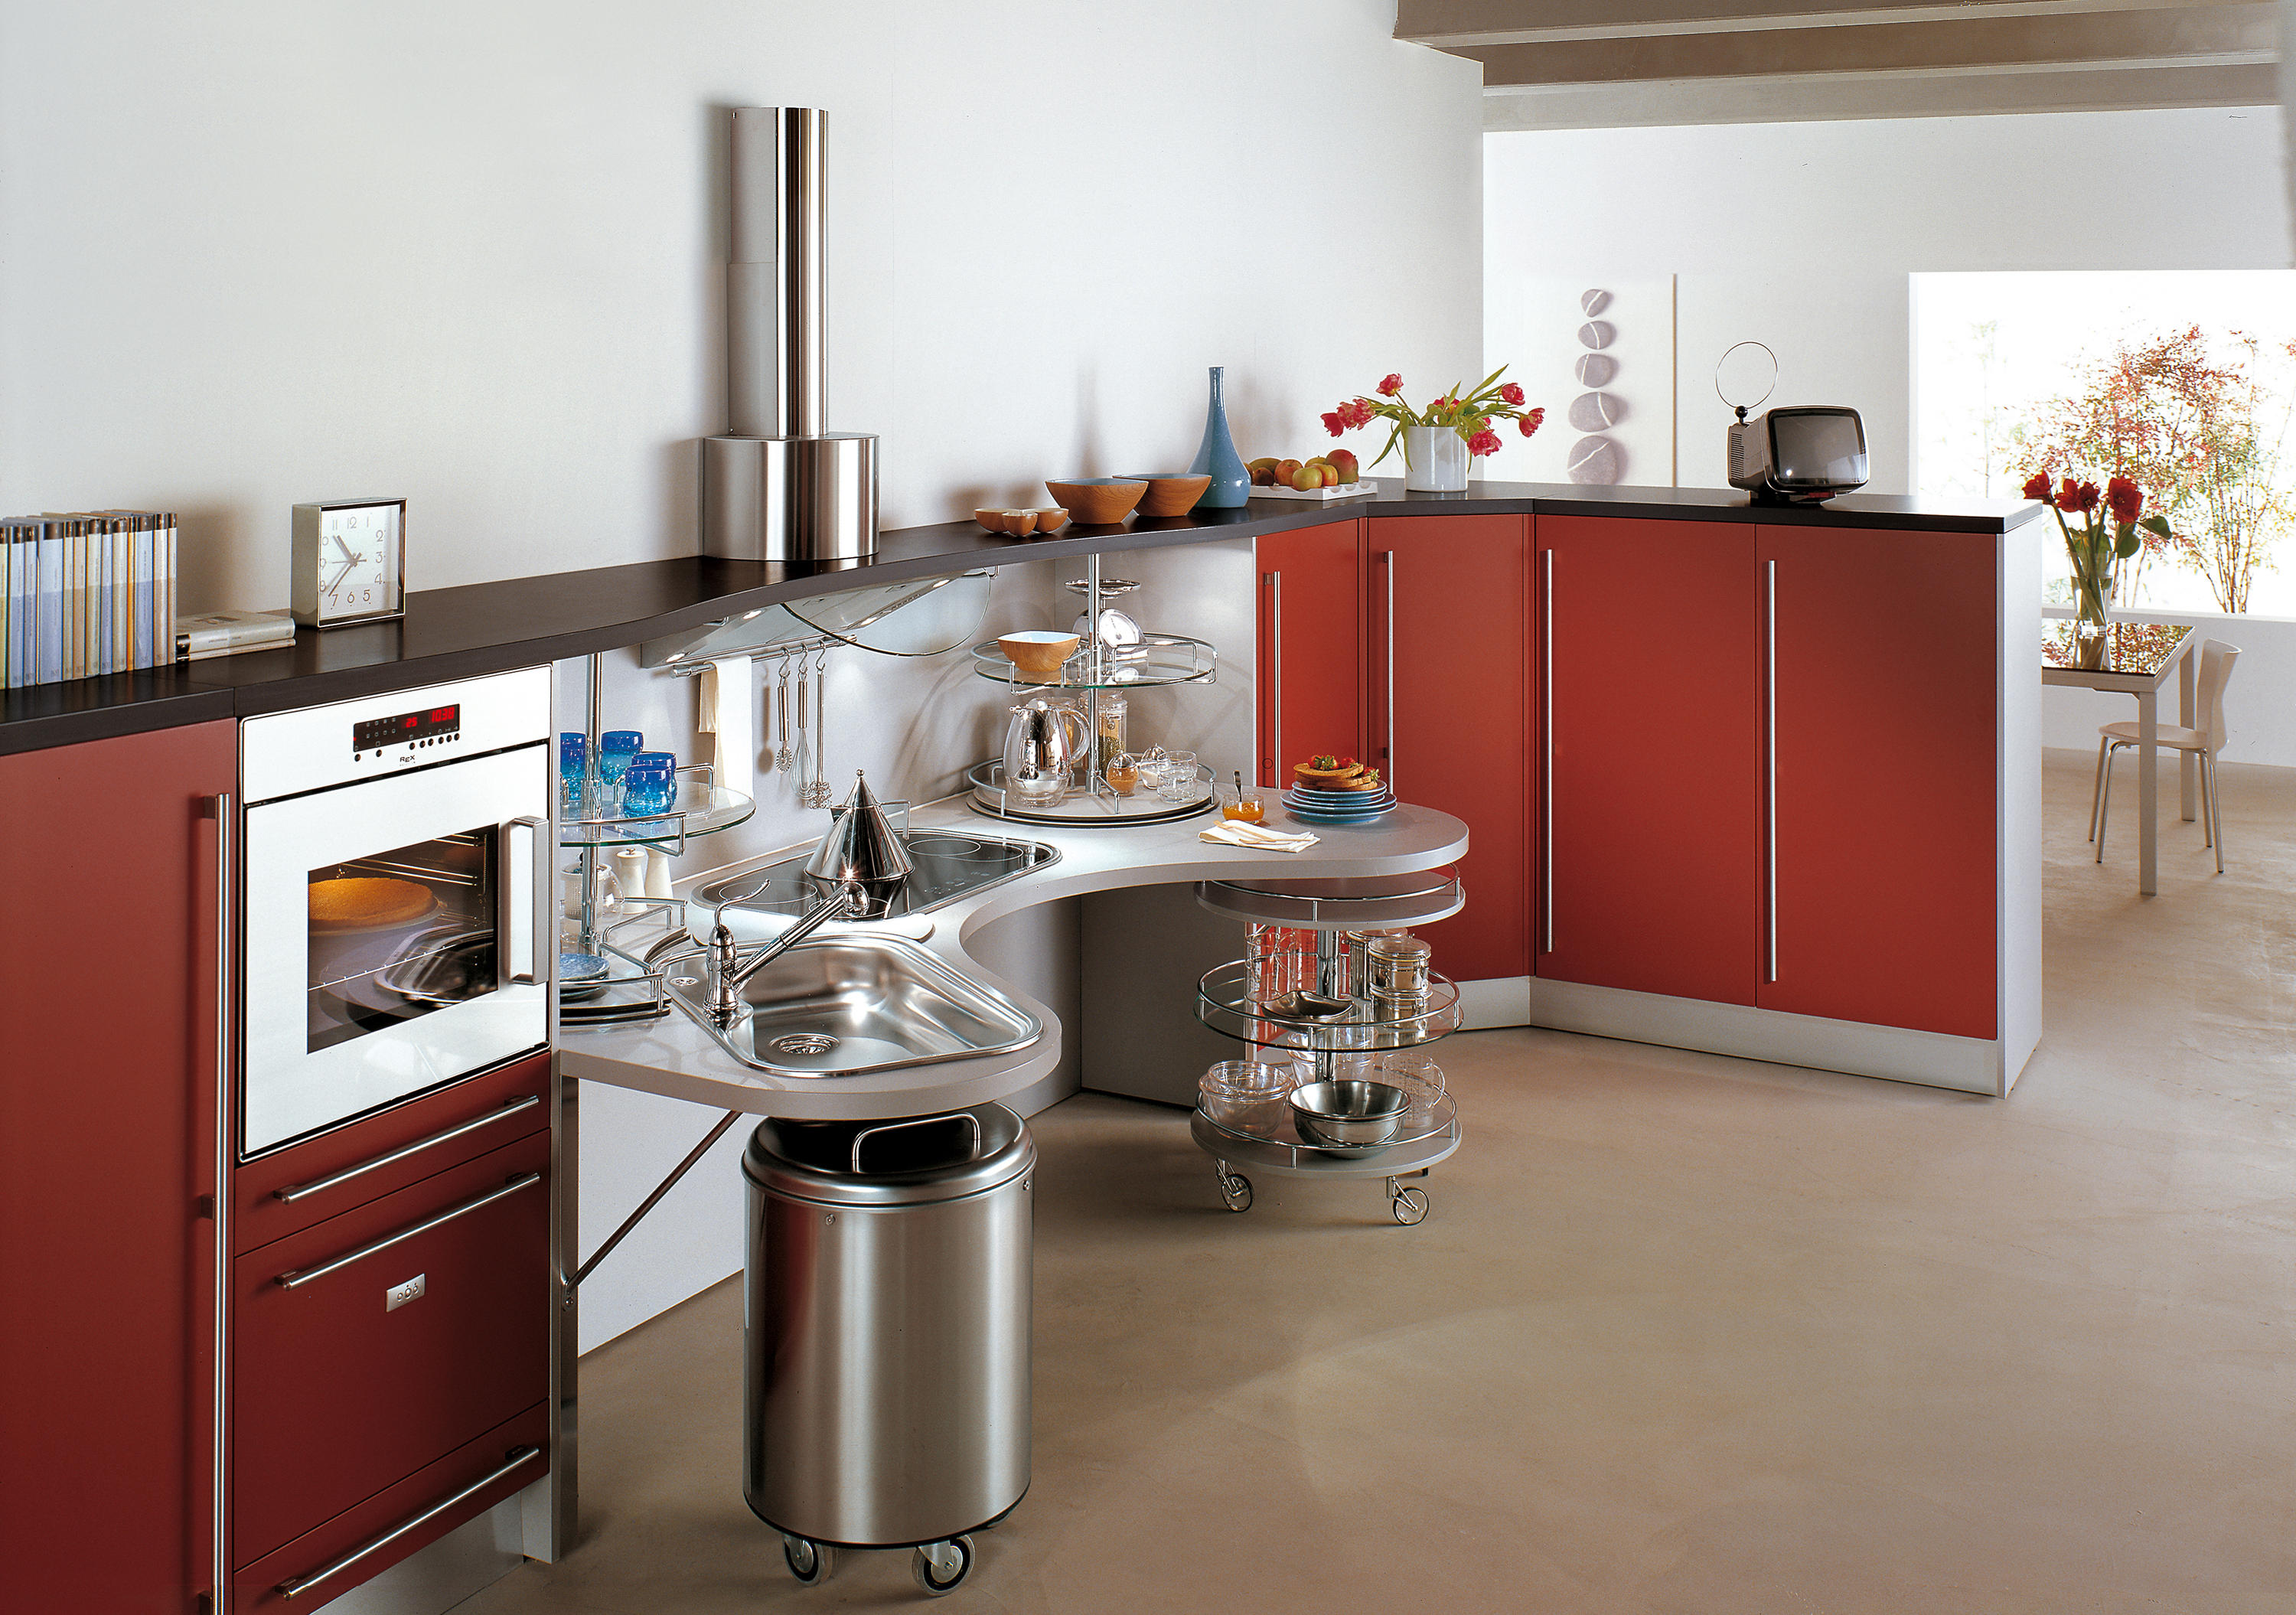 SKYLINE | LAB - Cucine a parete Snaidero USA | Architonic